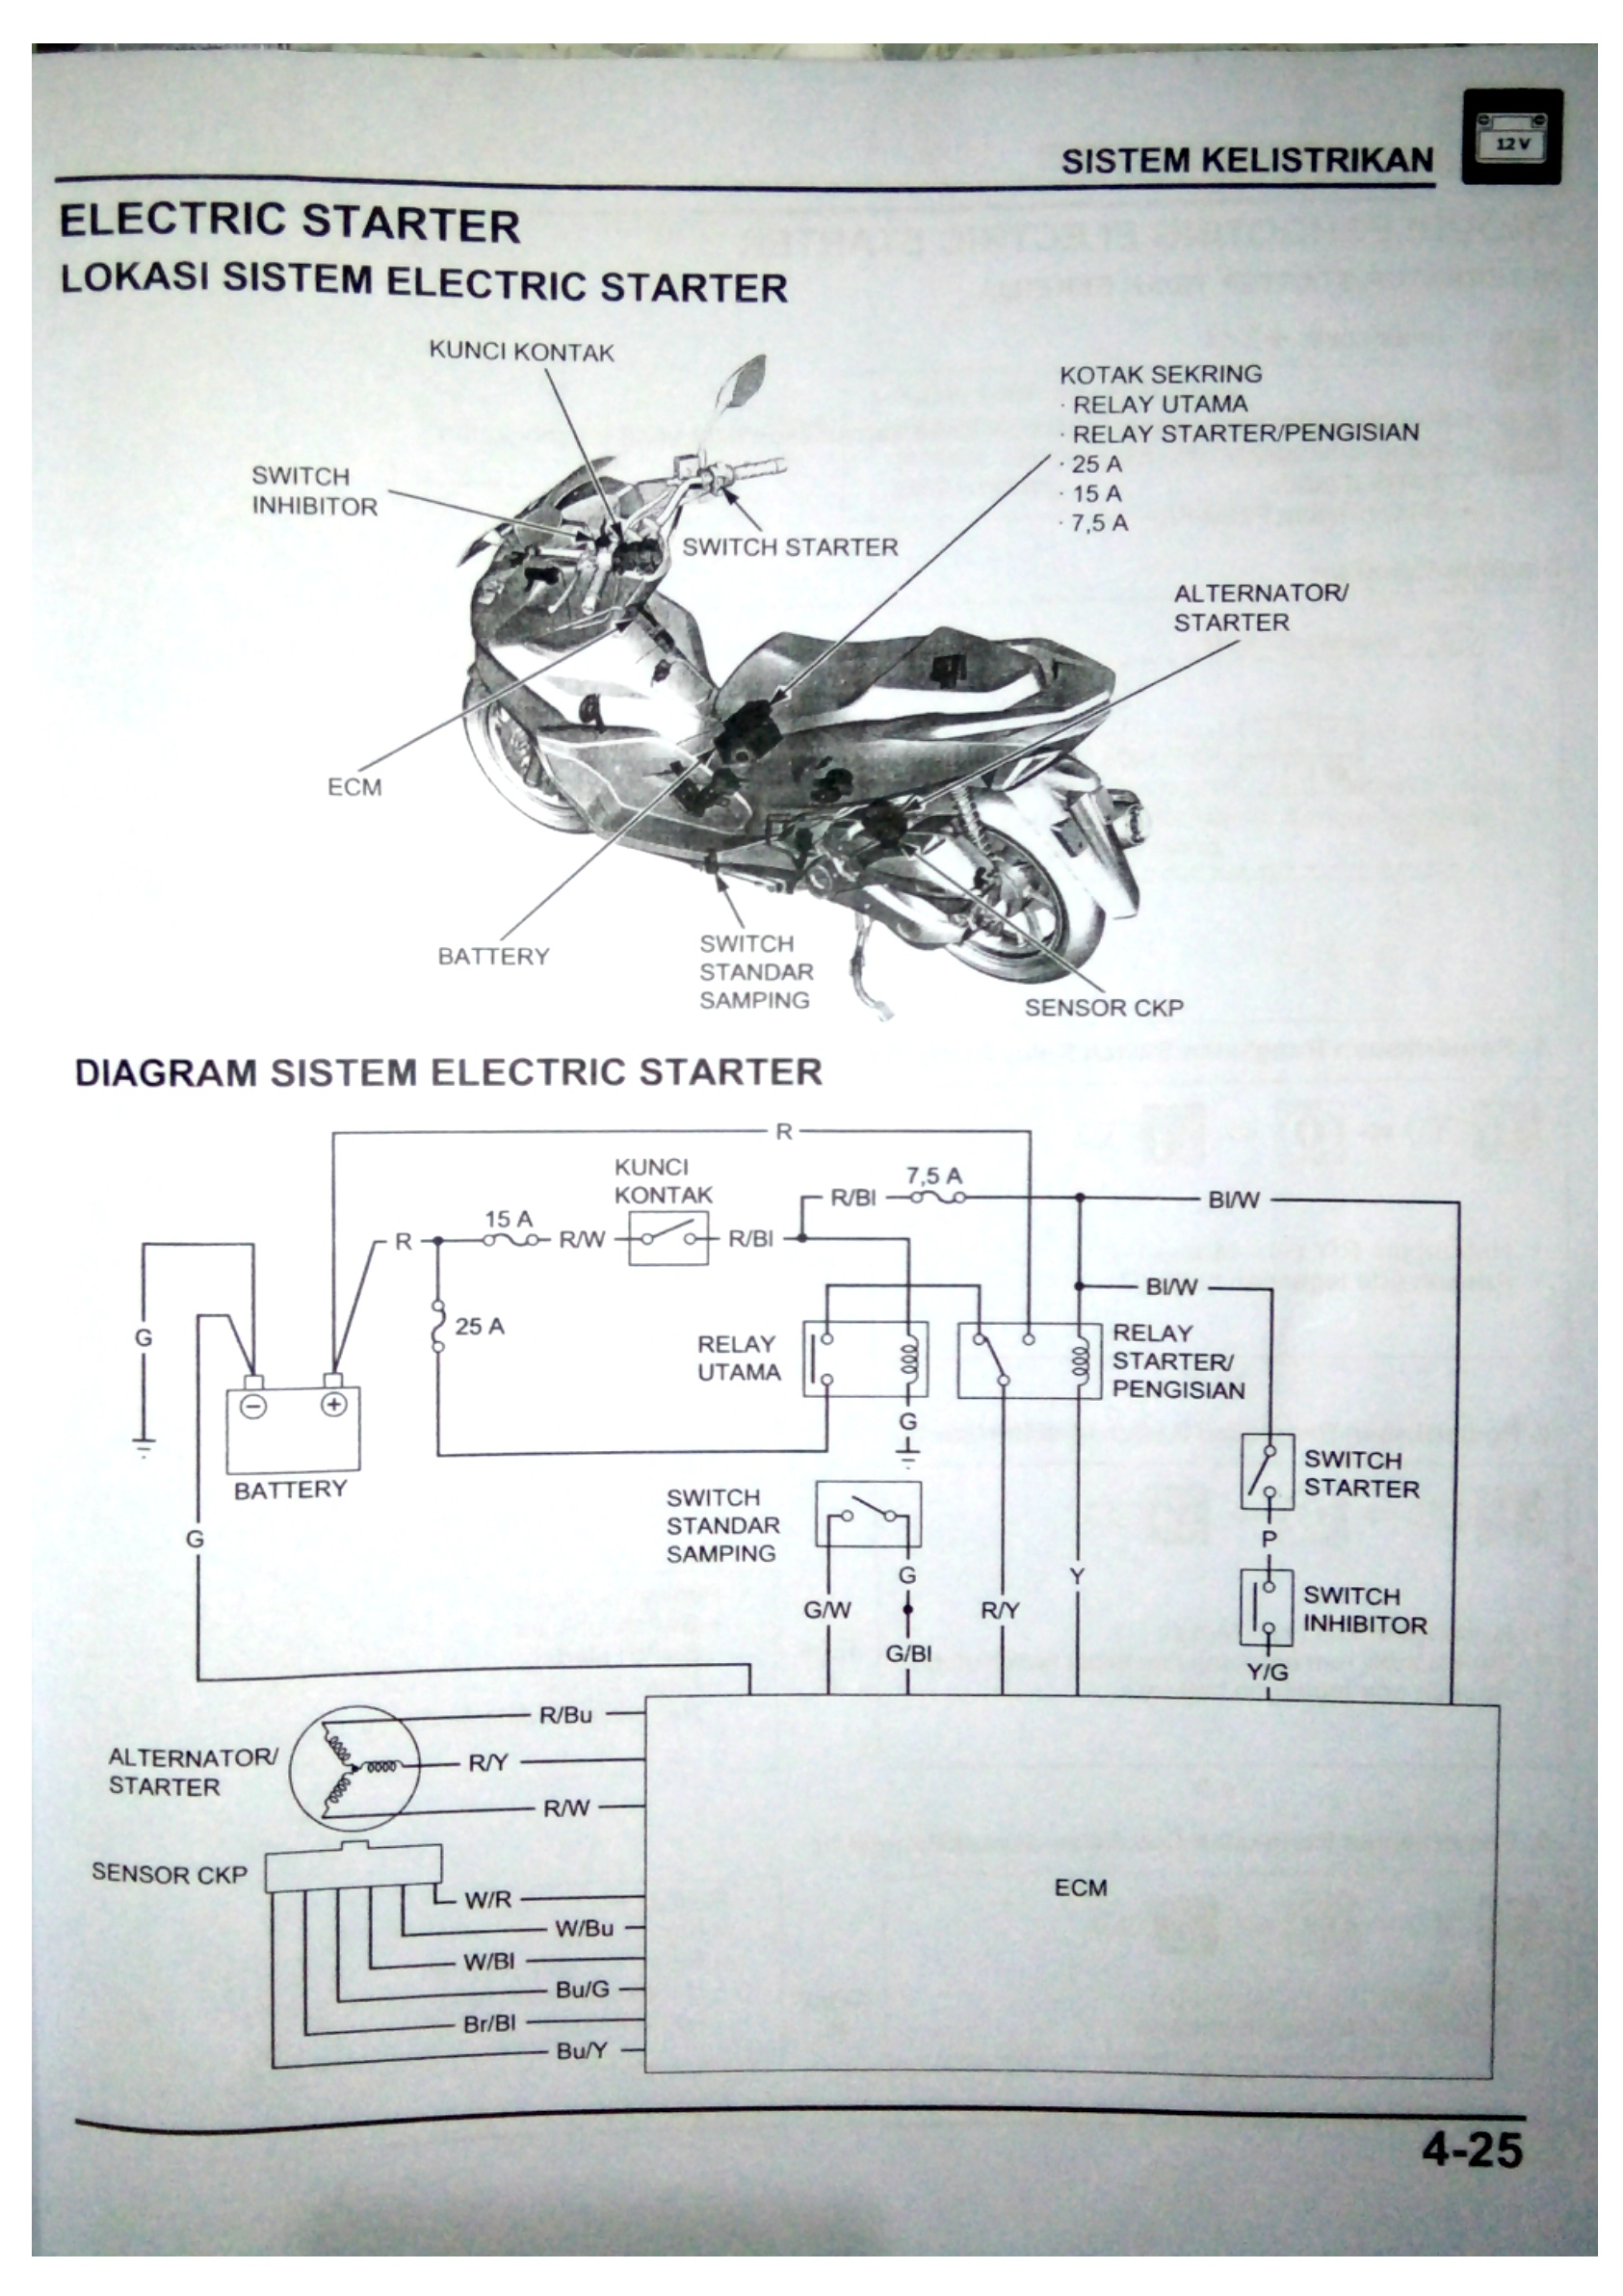 small resolution of electric wiring system diagram honda new pcx 150 2018 gisix s blog wiring diagram honda pcx wiring diagram honda pcx